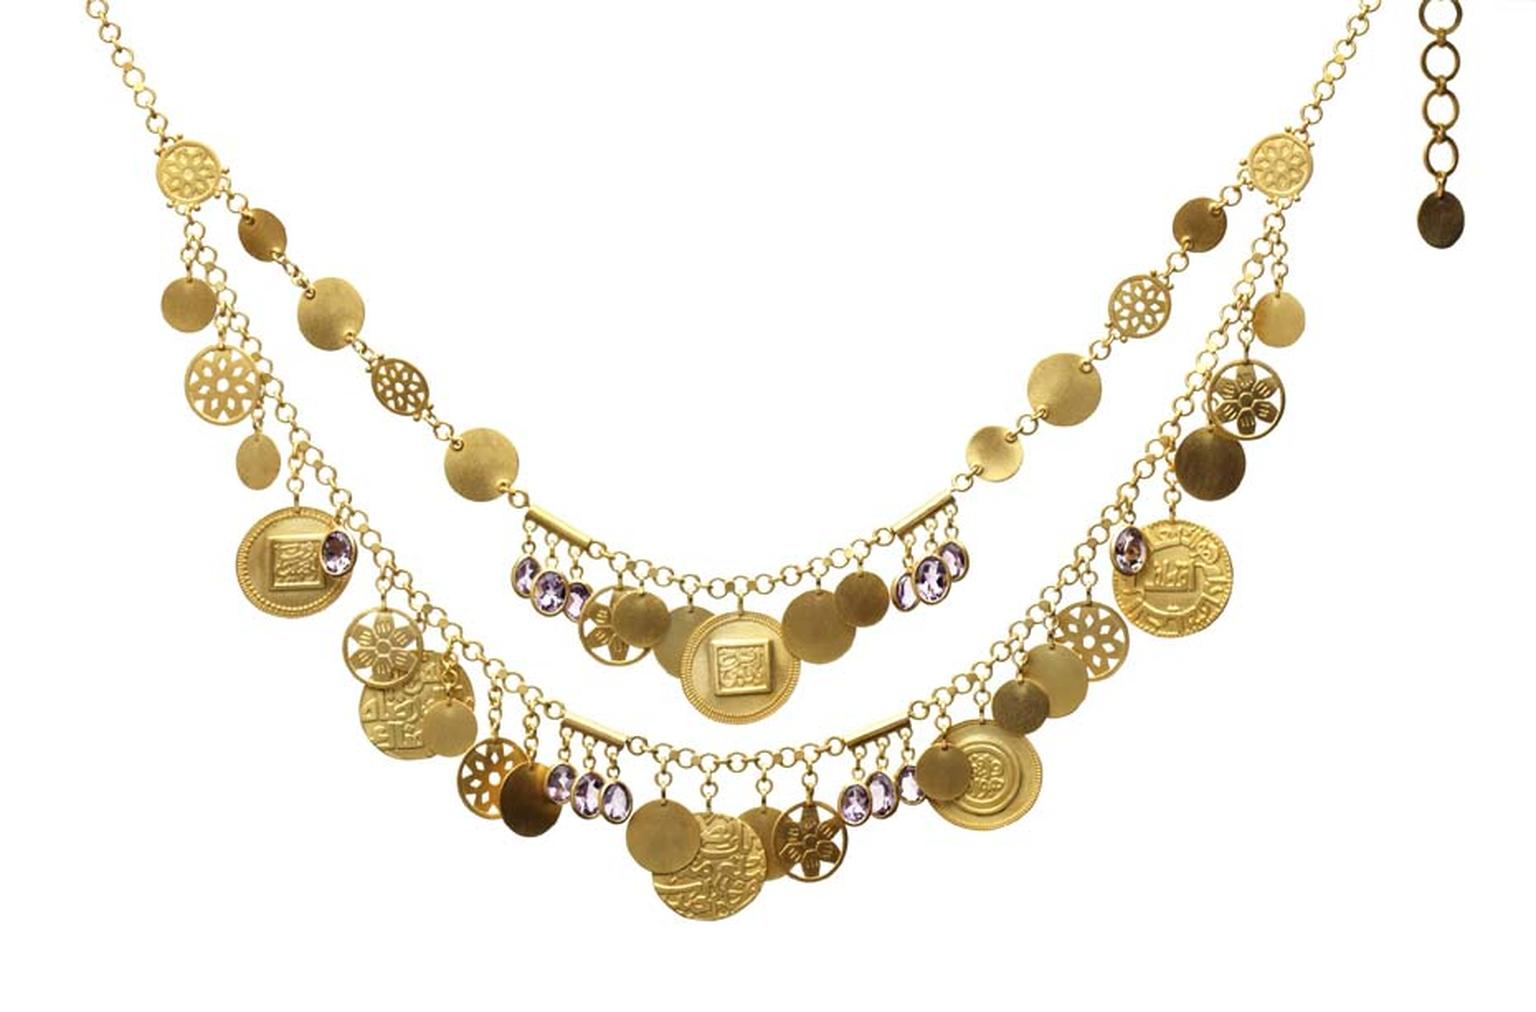 Azza Fahmy for Matthew Williamson Layered Coins necklace from the Spring/Summer 2014 collection